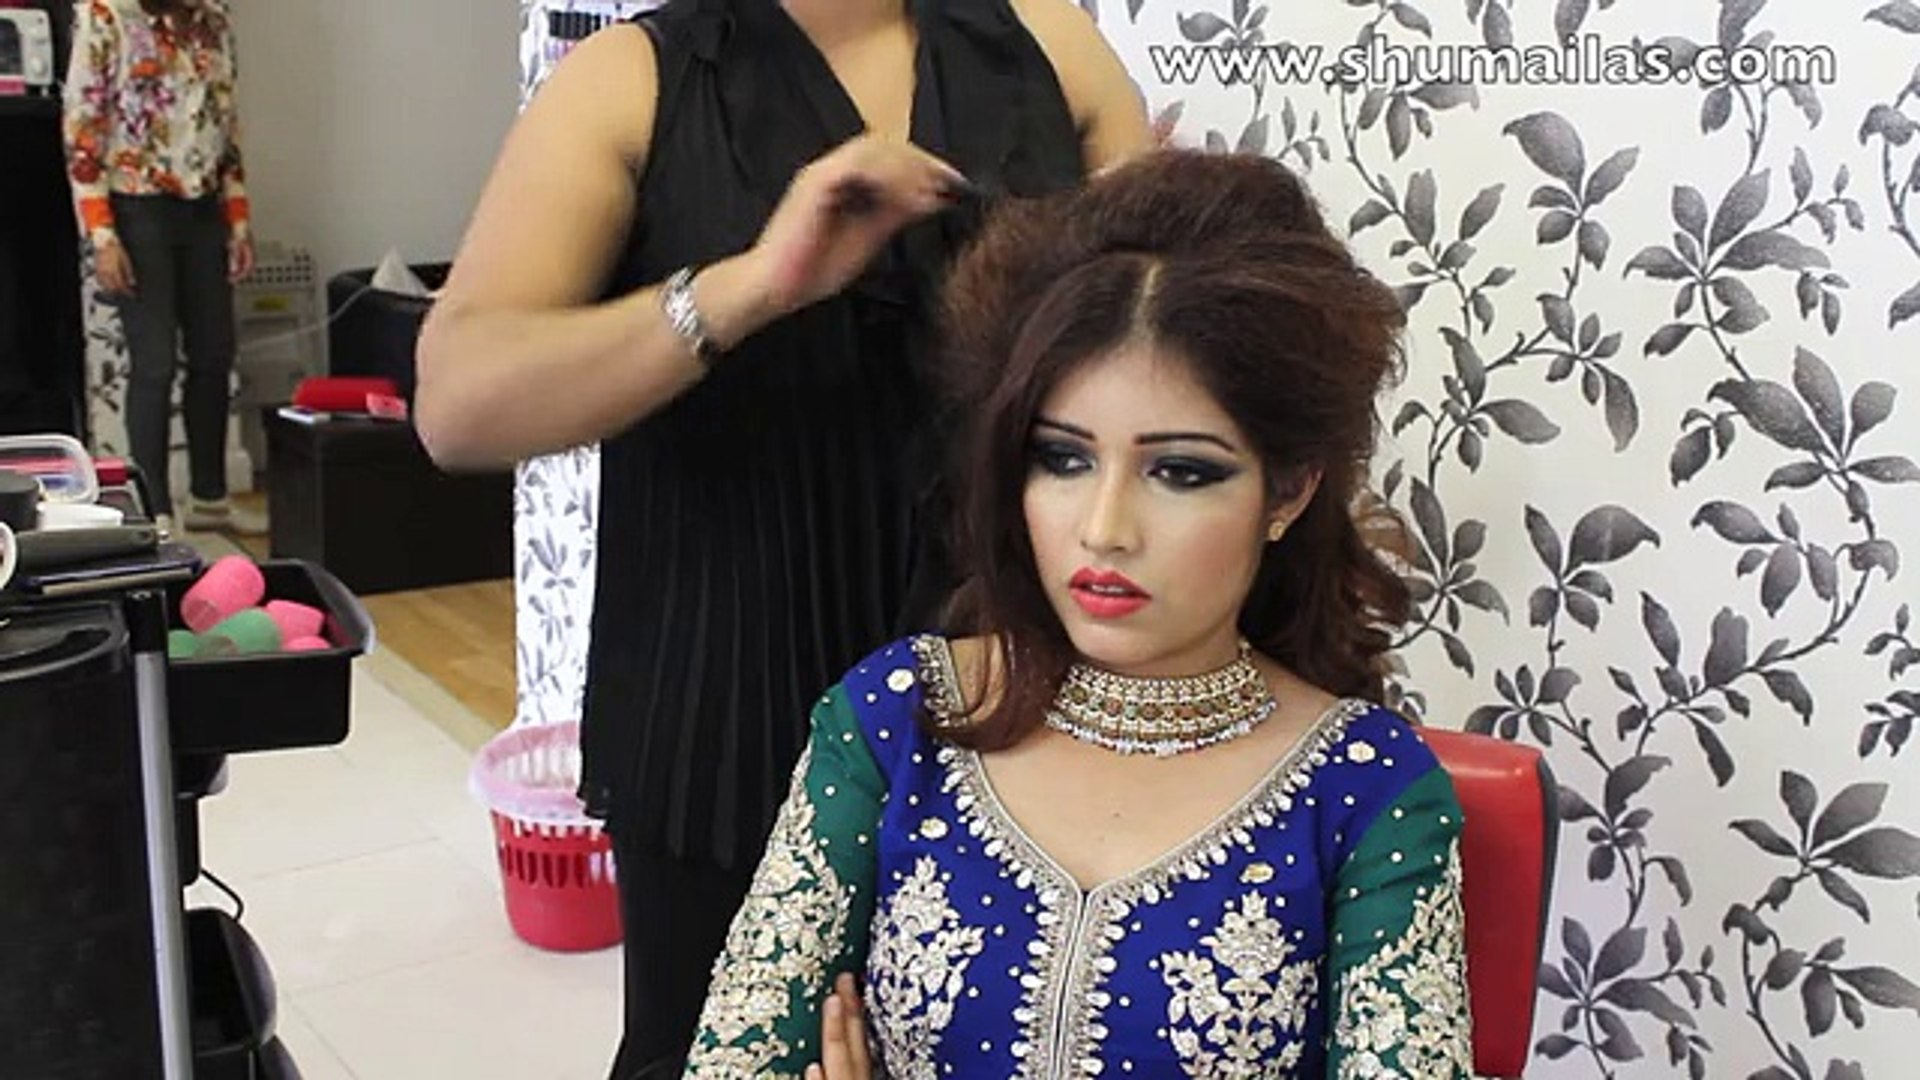 pakistani hair style tutorial - wedding hairstyles - mehndi hairstyle